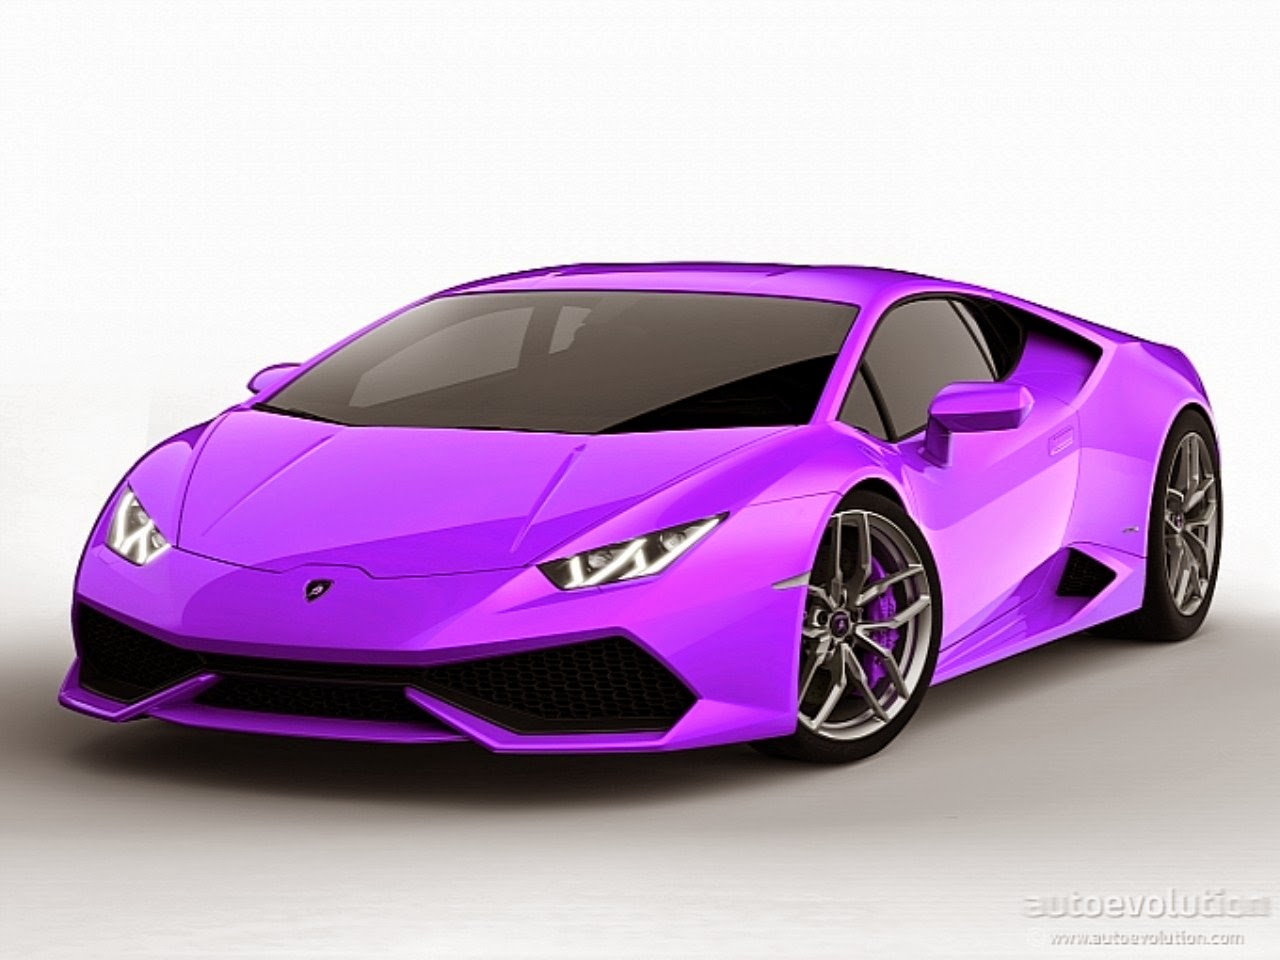 lamborghini huracan price puerto rico camry 2014 msrp price puerto rico autos post 2014. Black Bedroom Furniture Sets. Home Design Ideas